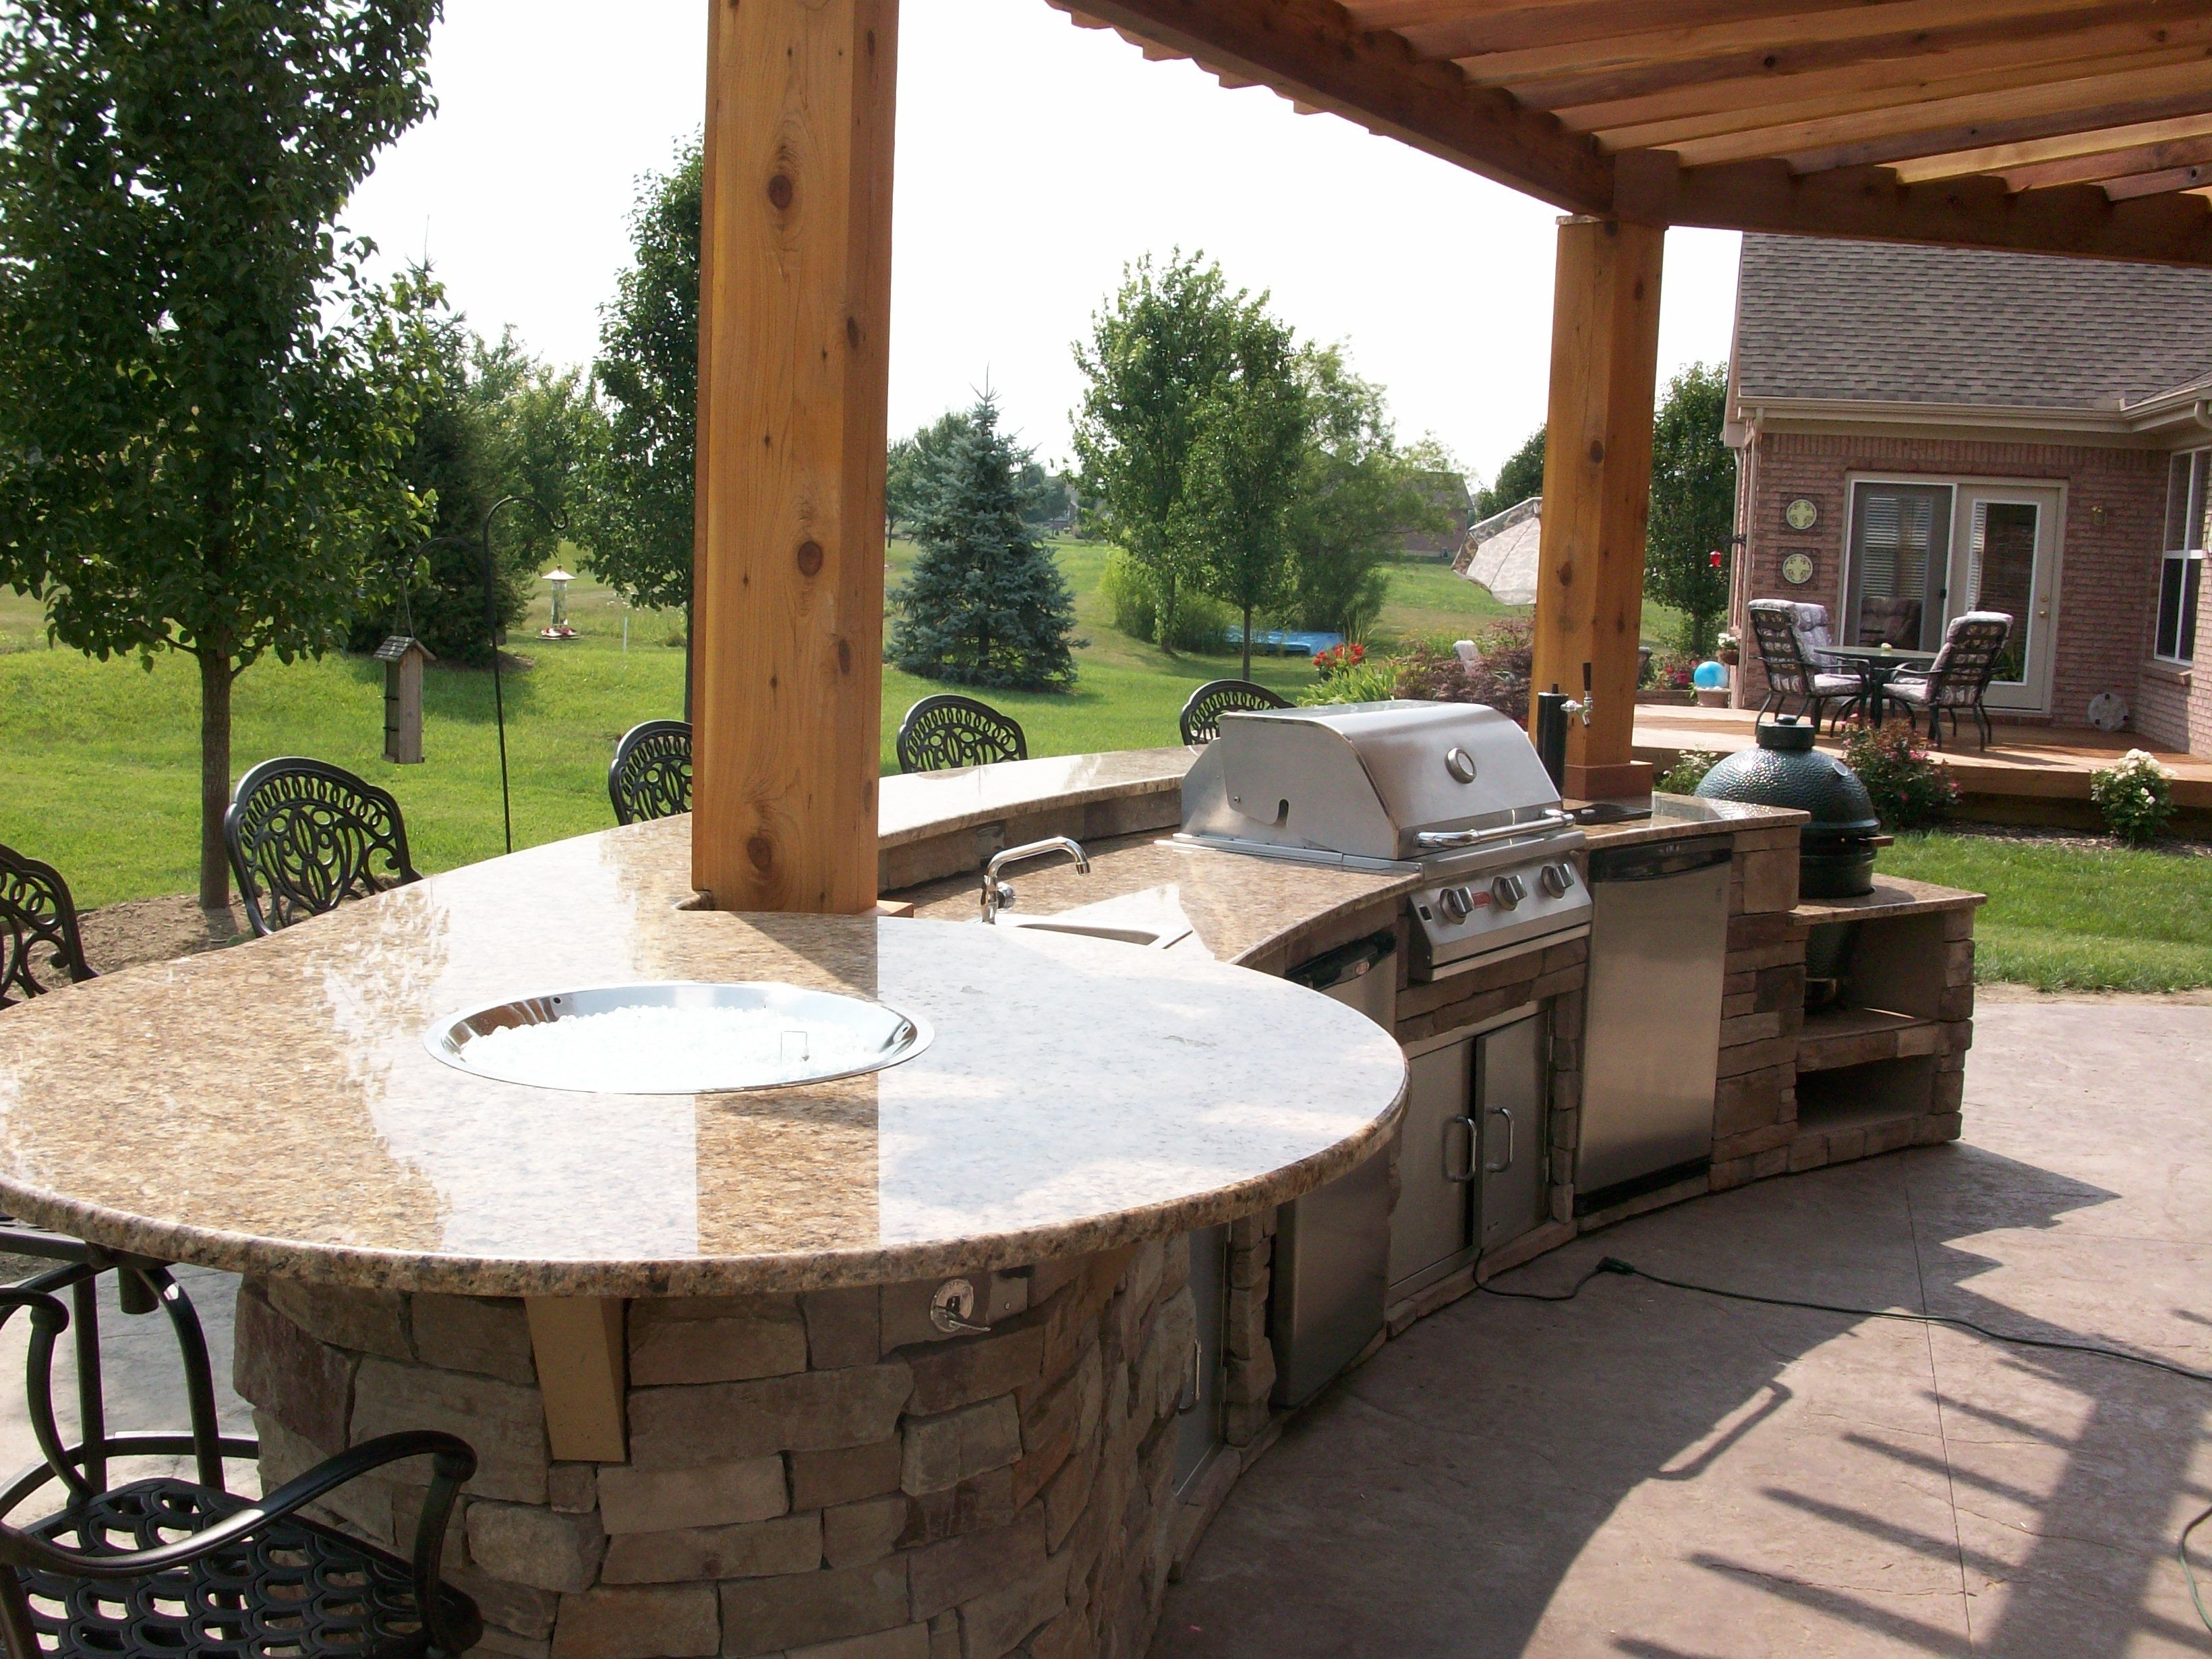 photos of outdoor kitchens and bars kitchen islands for sale 43 firepit bar top firepits fireplaces